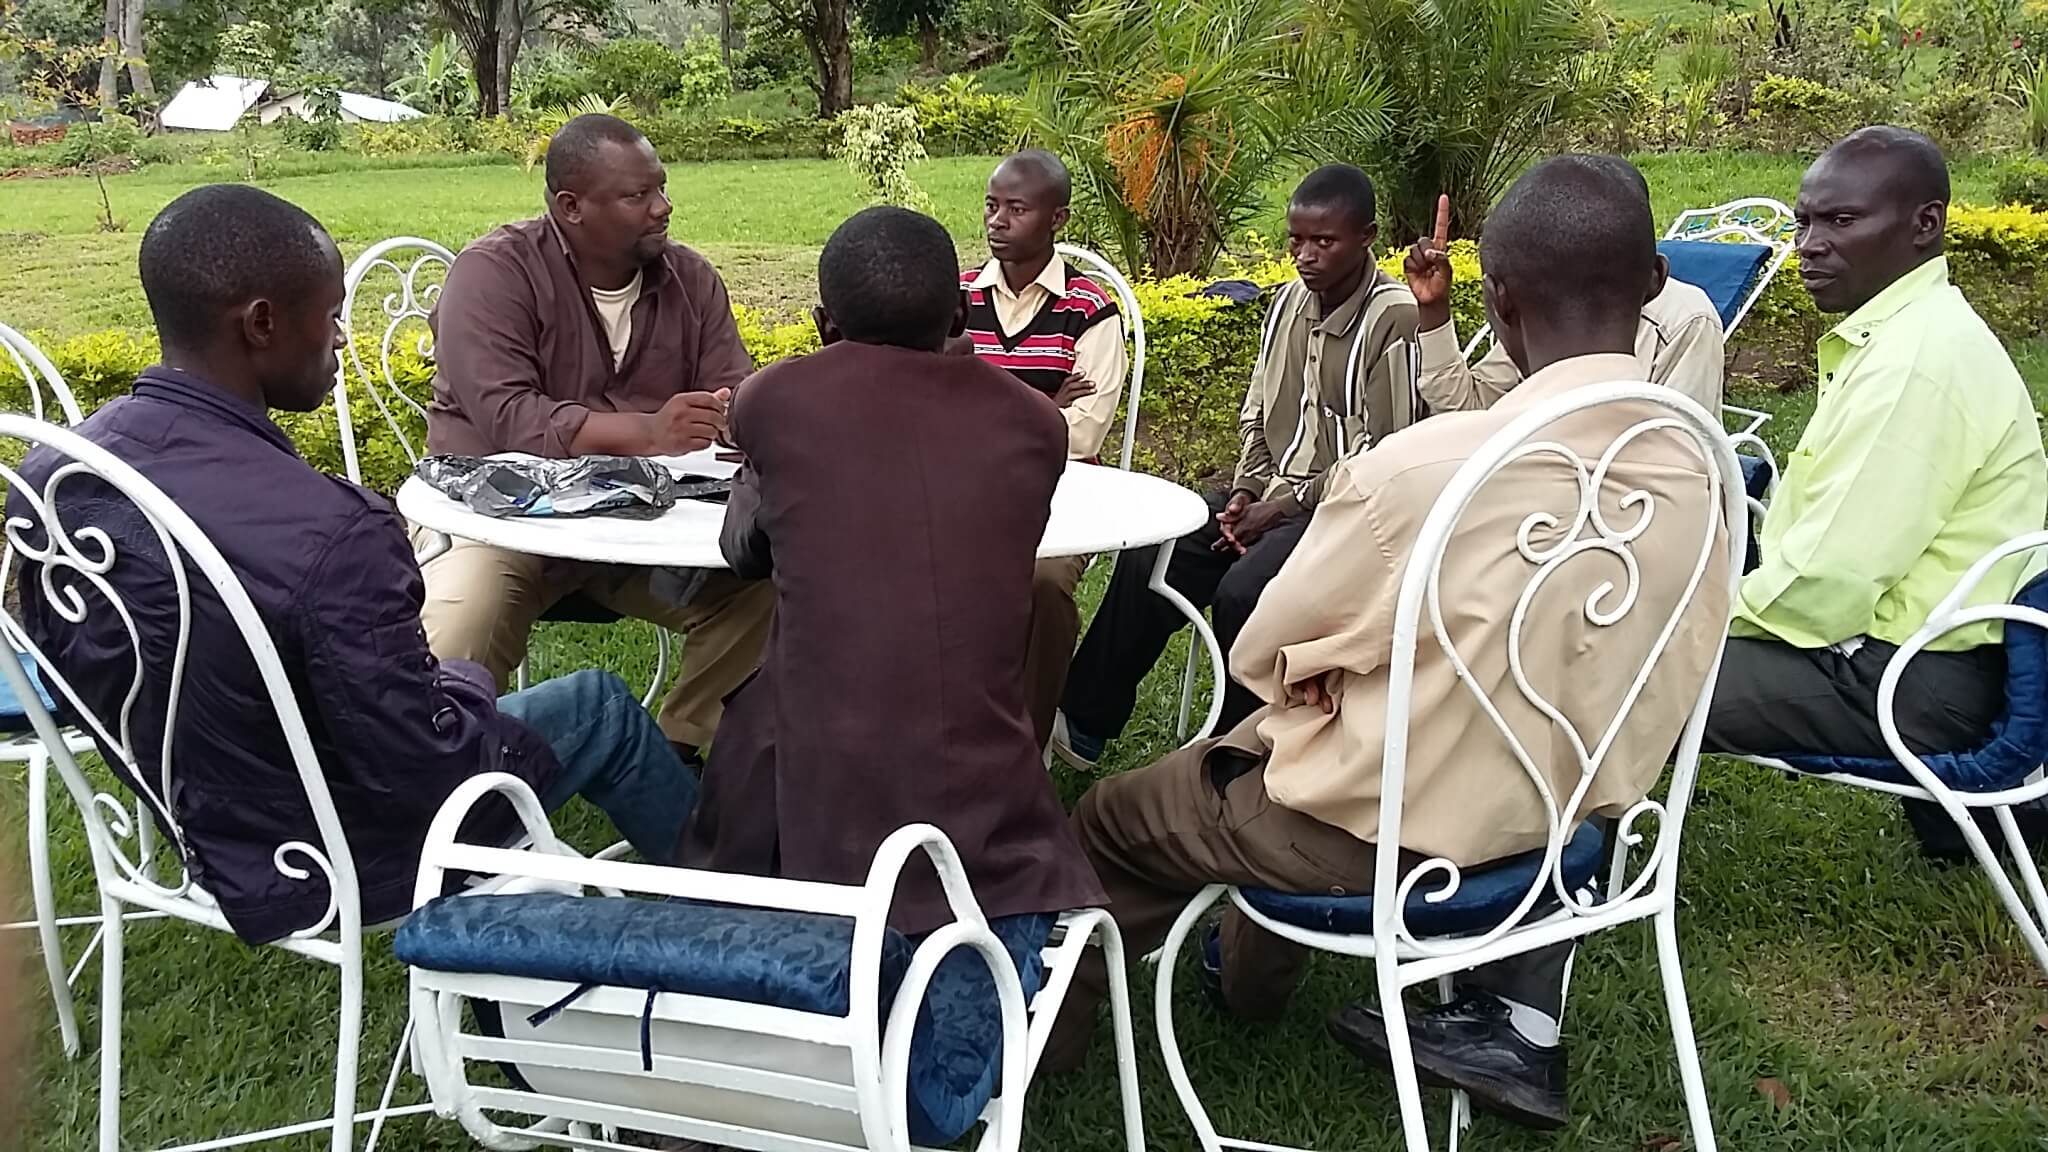 """Dr Augustin K. Basabose, PEx Executive Director meeting with local youth at Idjwi Island, members of """"Initiative pour la Restauration et la Conservation des Forets d'Idjwi (IRCFI)"""", a community based organization aiming to restore and conserve Idjwi forests."""